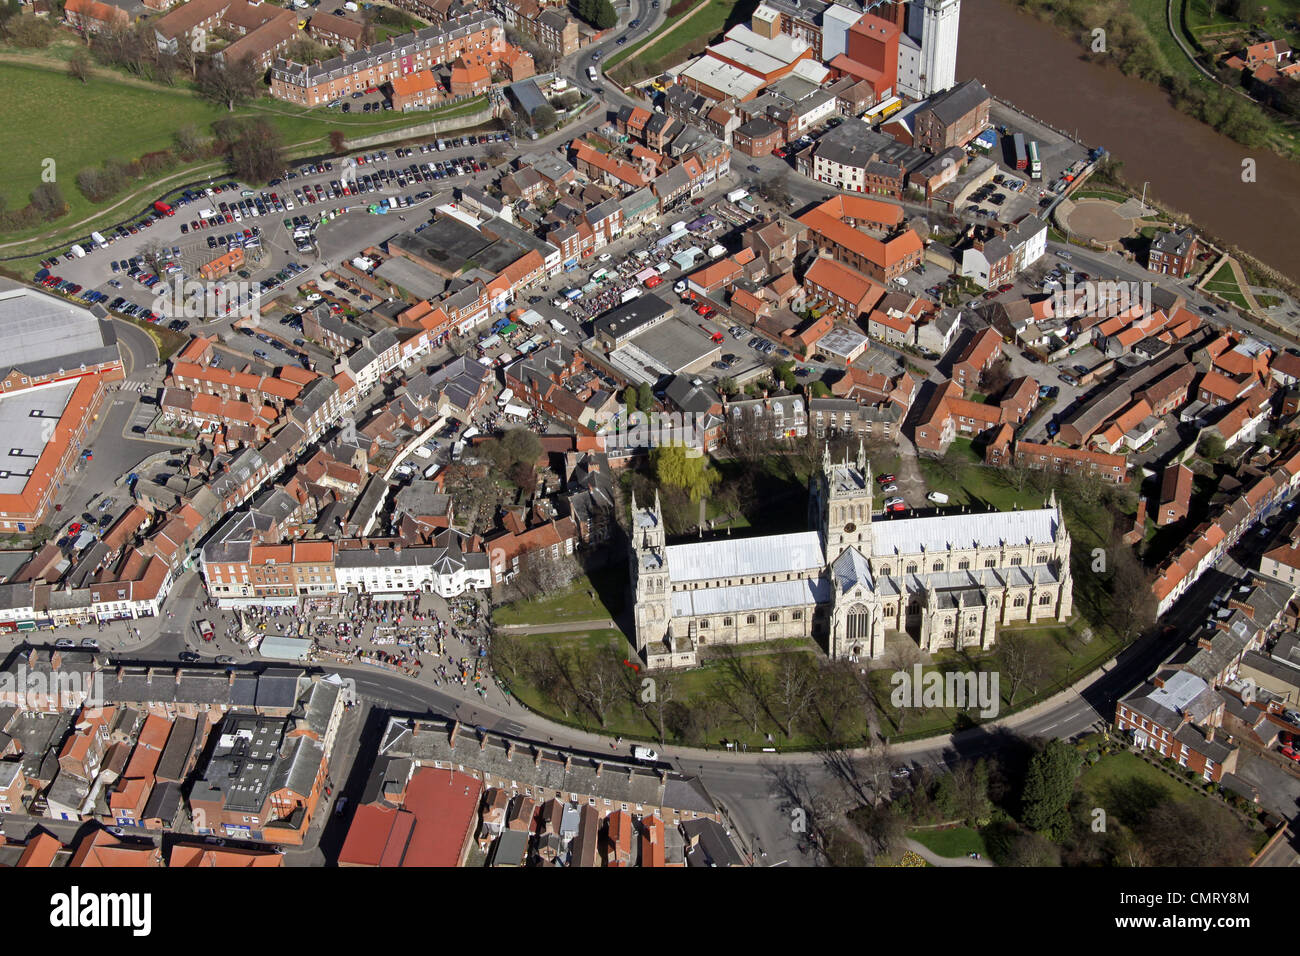 aerial view of Selby Abbey, Selby Cathedral, Selby Minster, Yorkshire - Stock Image